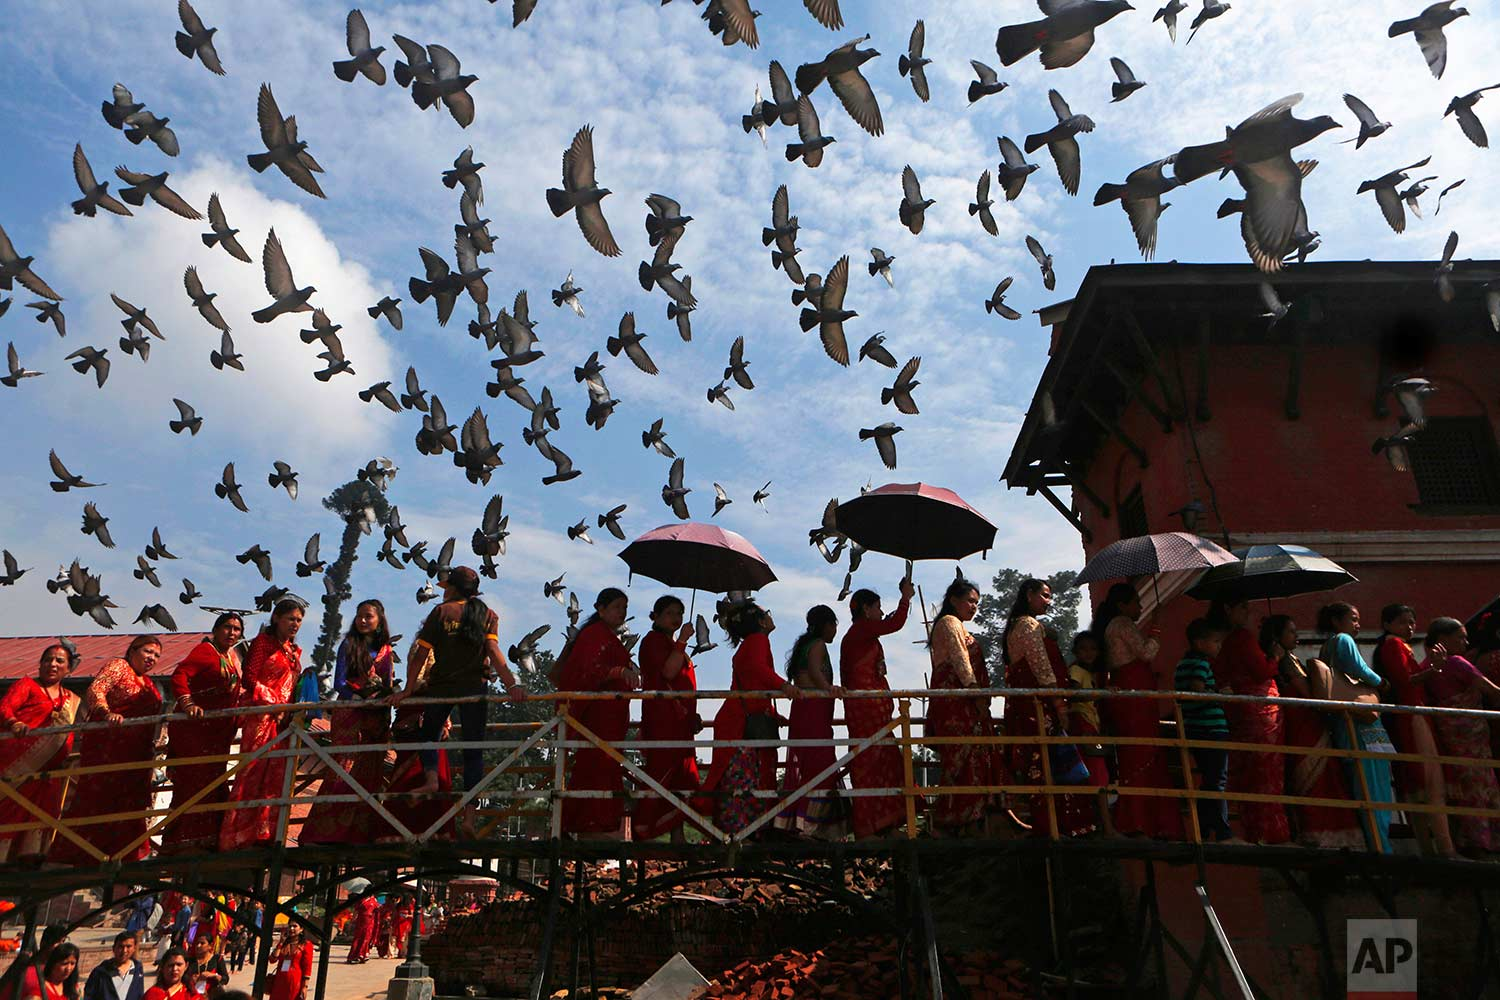 Nepalese Hindu women stand in a line to enter the Pashupatinath temple to offer prayers during celebrations for the festival of Teej in Kathmandu, Nepal, Thursday, Aug. 24, 2017. (AP Photo/Niranjan Shrestha)